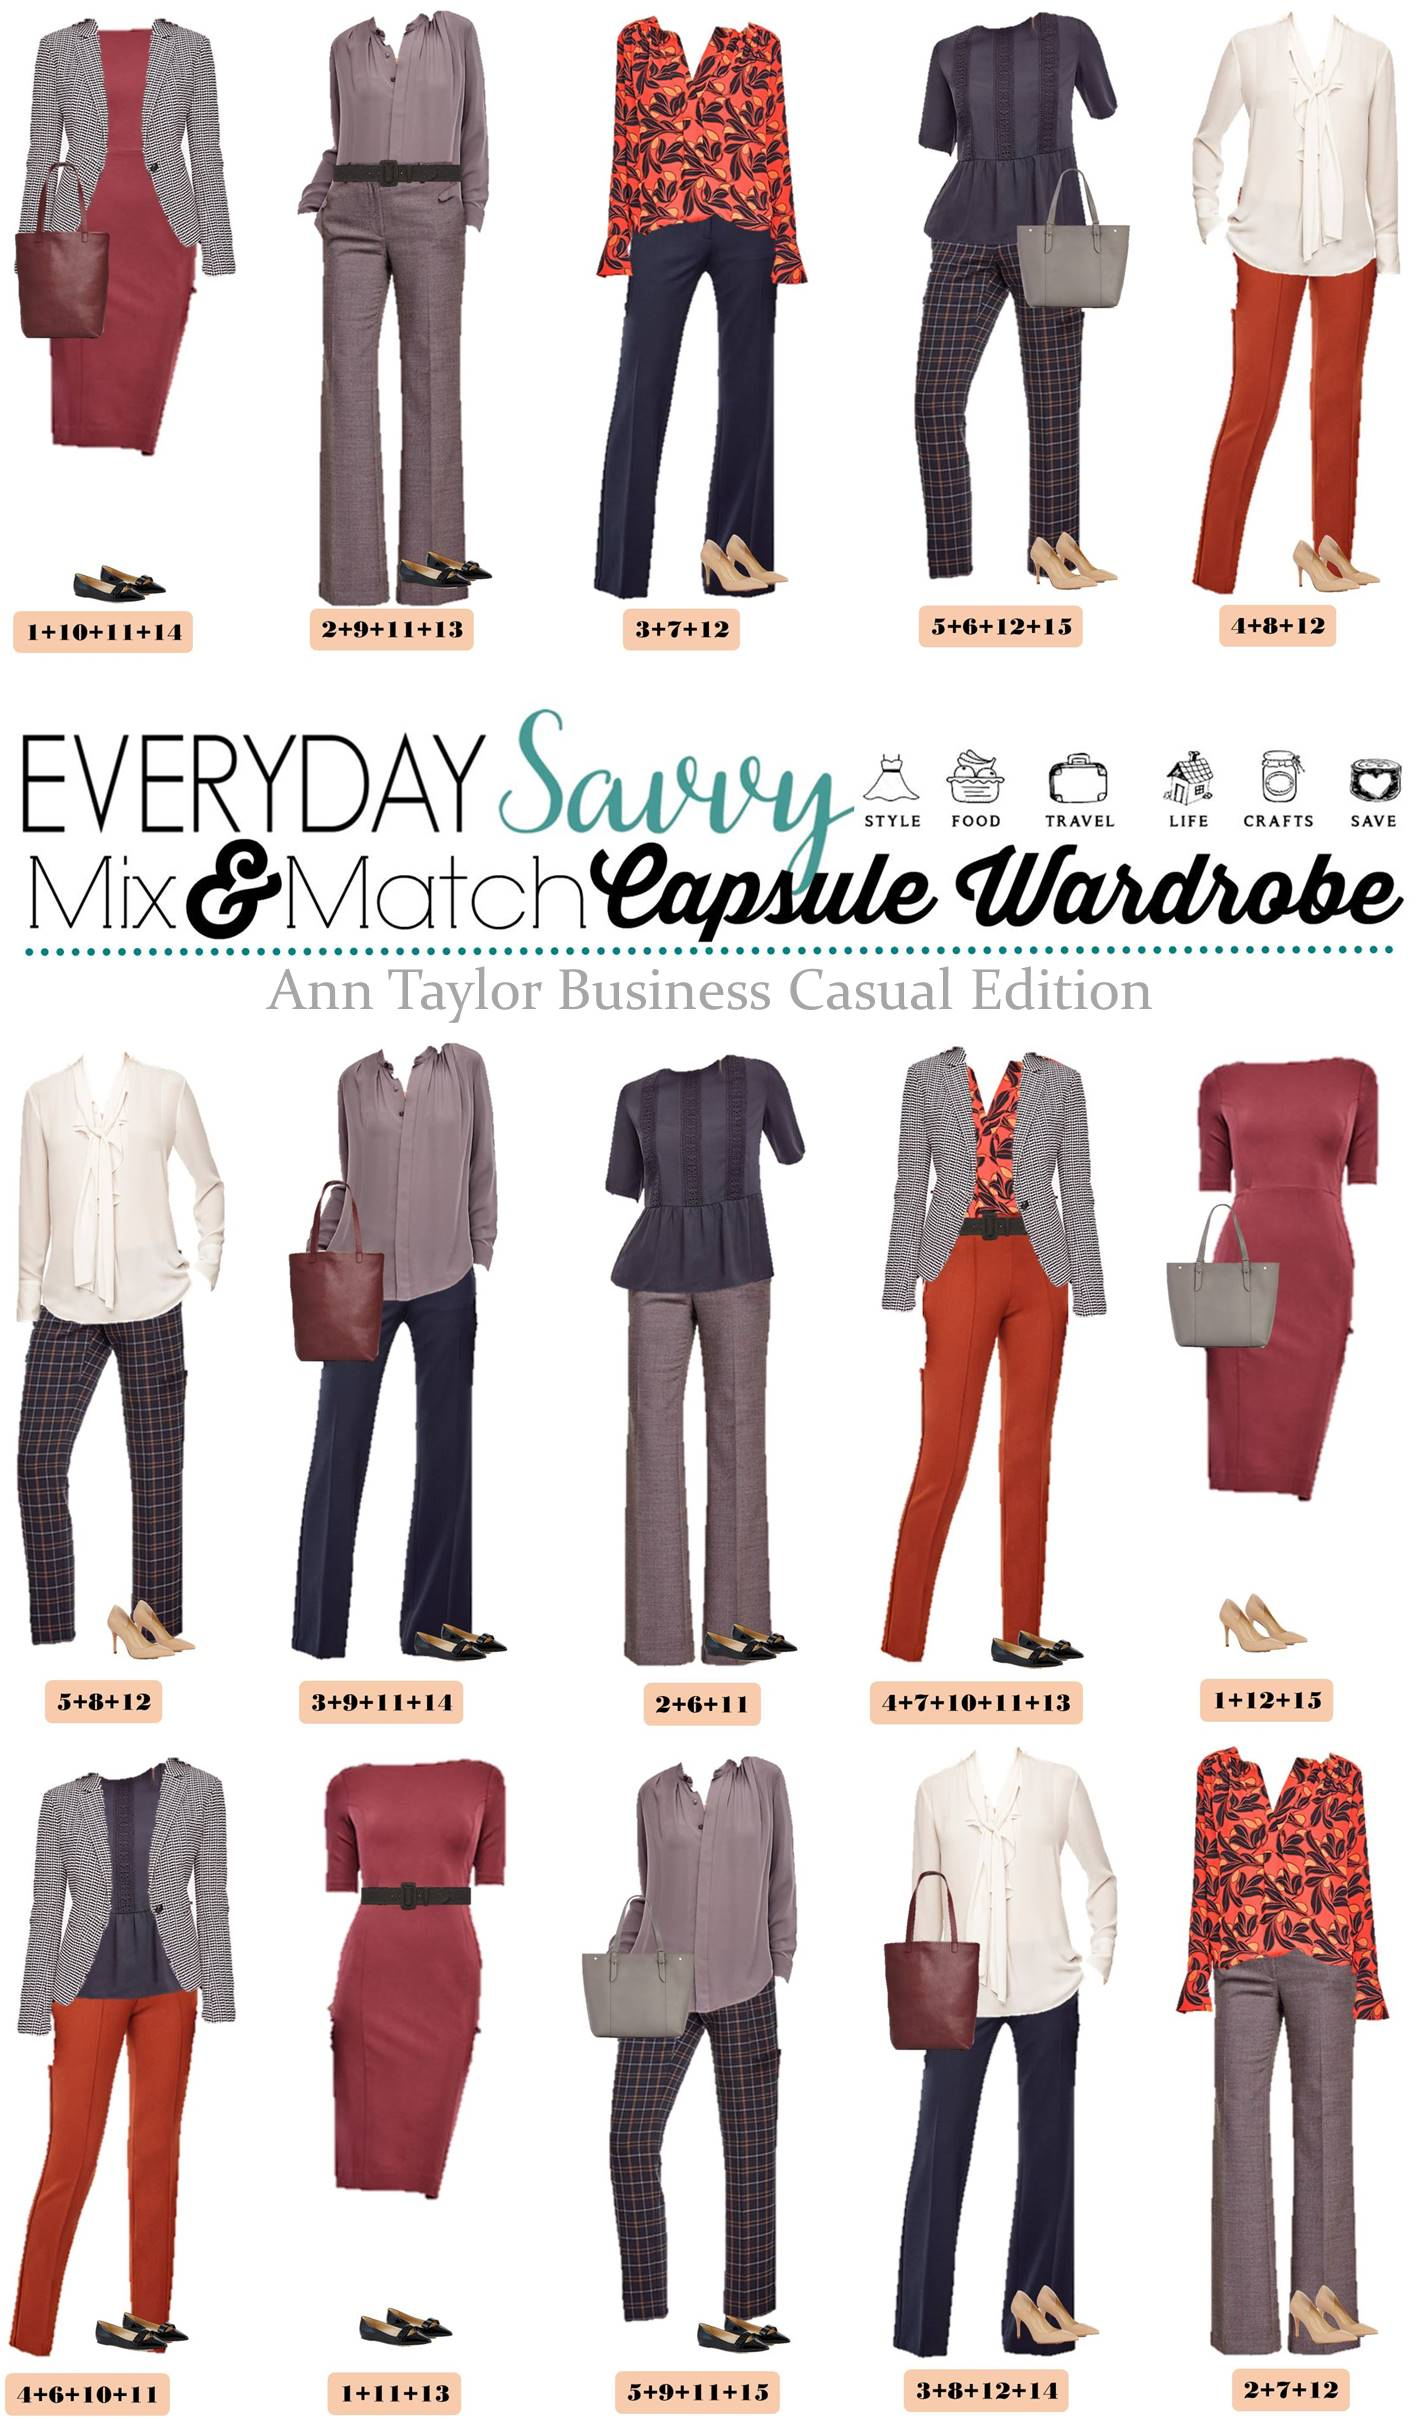 ann taylor business casual capsule wardrobe. Black Bedroom Furniture Sets. Home Design Ideas